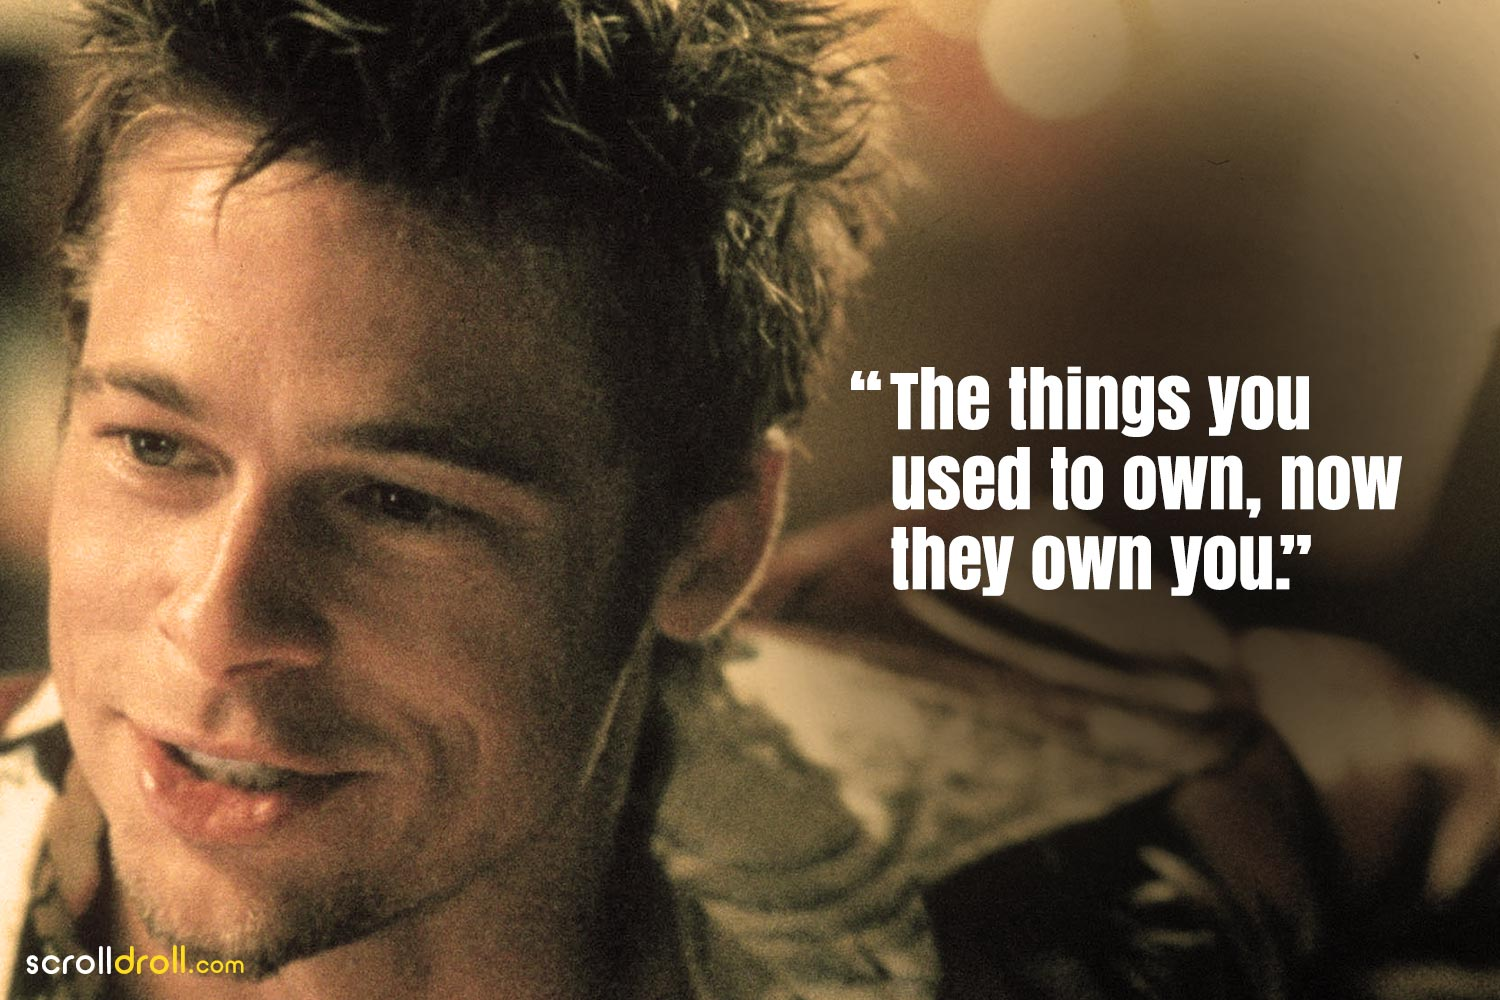 Fight Club Quotes-The things you used to own now they own you